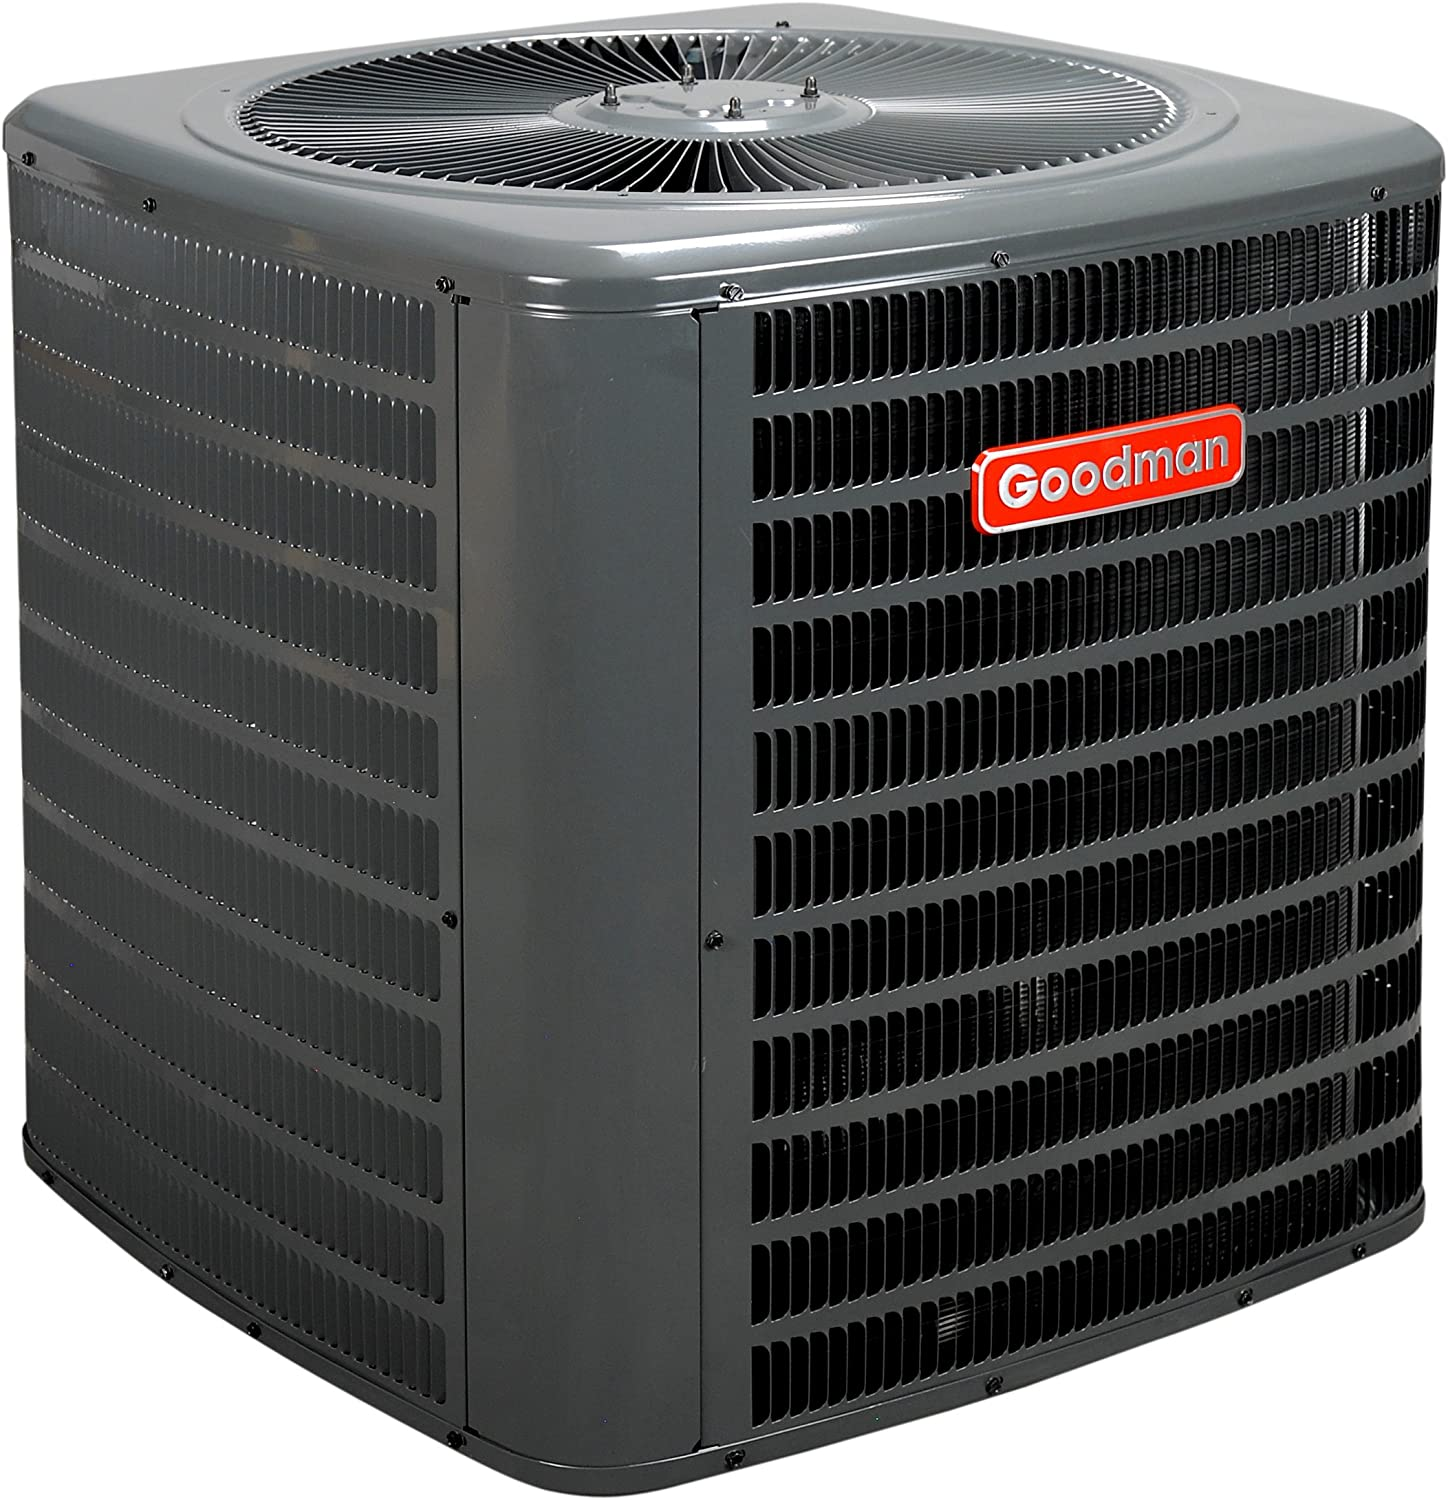 Amazon Com Goodman 3 Ton 16 Seer Air Conditioner R 410a Gsx160361